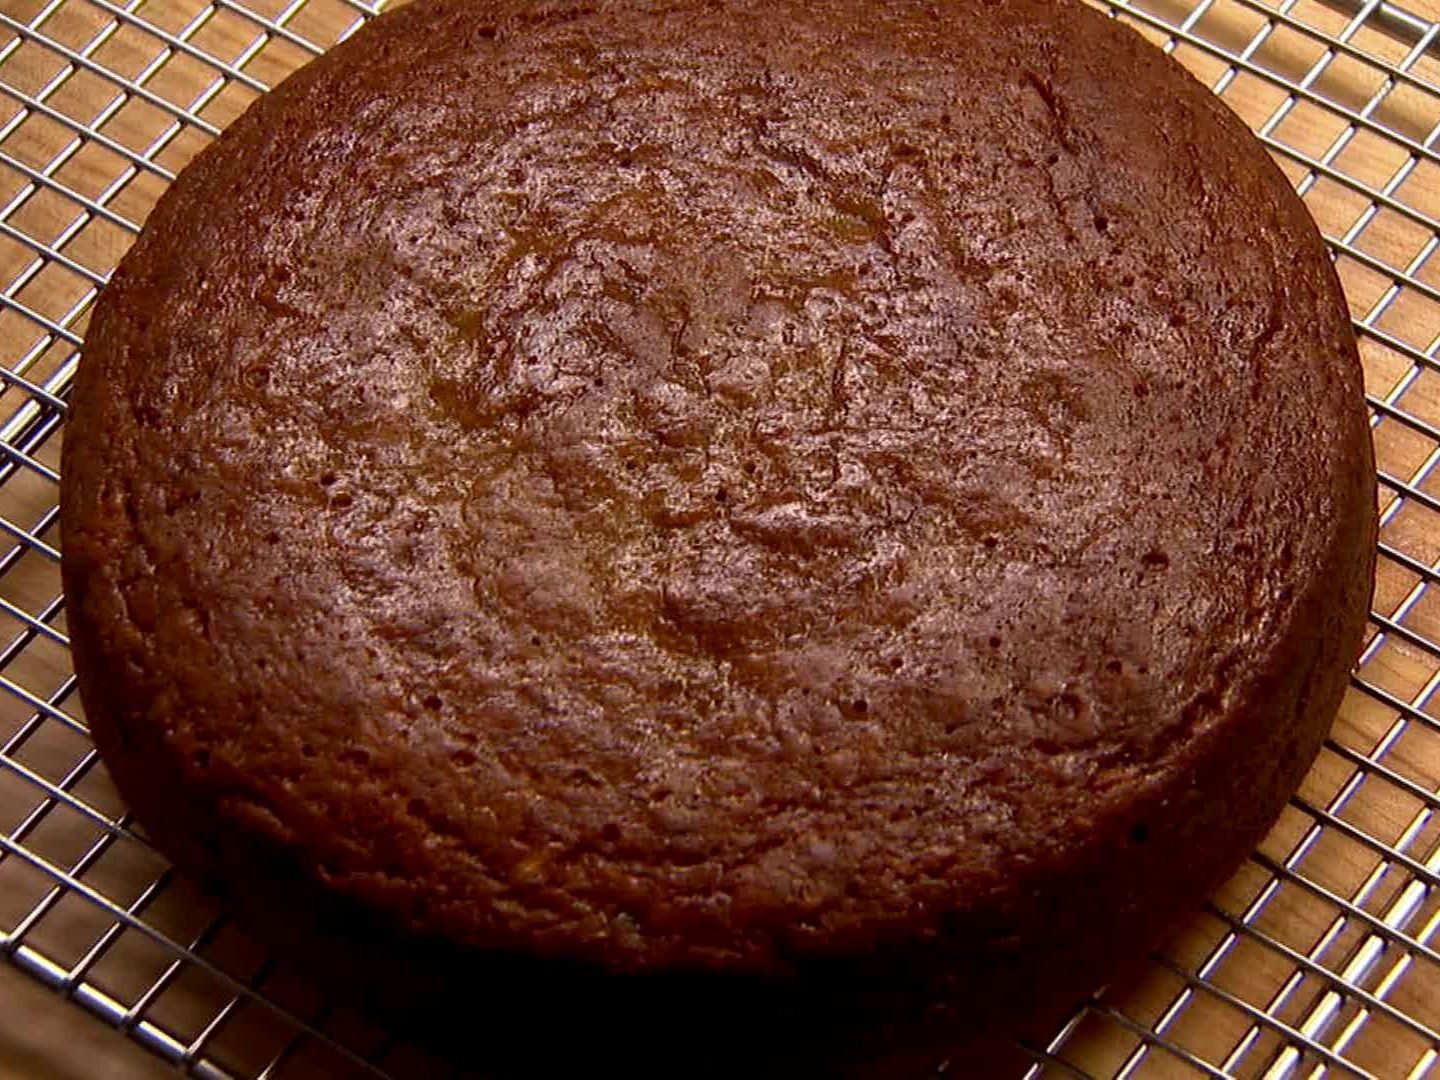 Banana cake recipes without butter